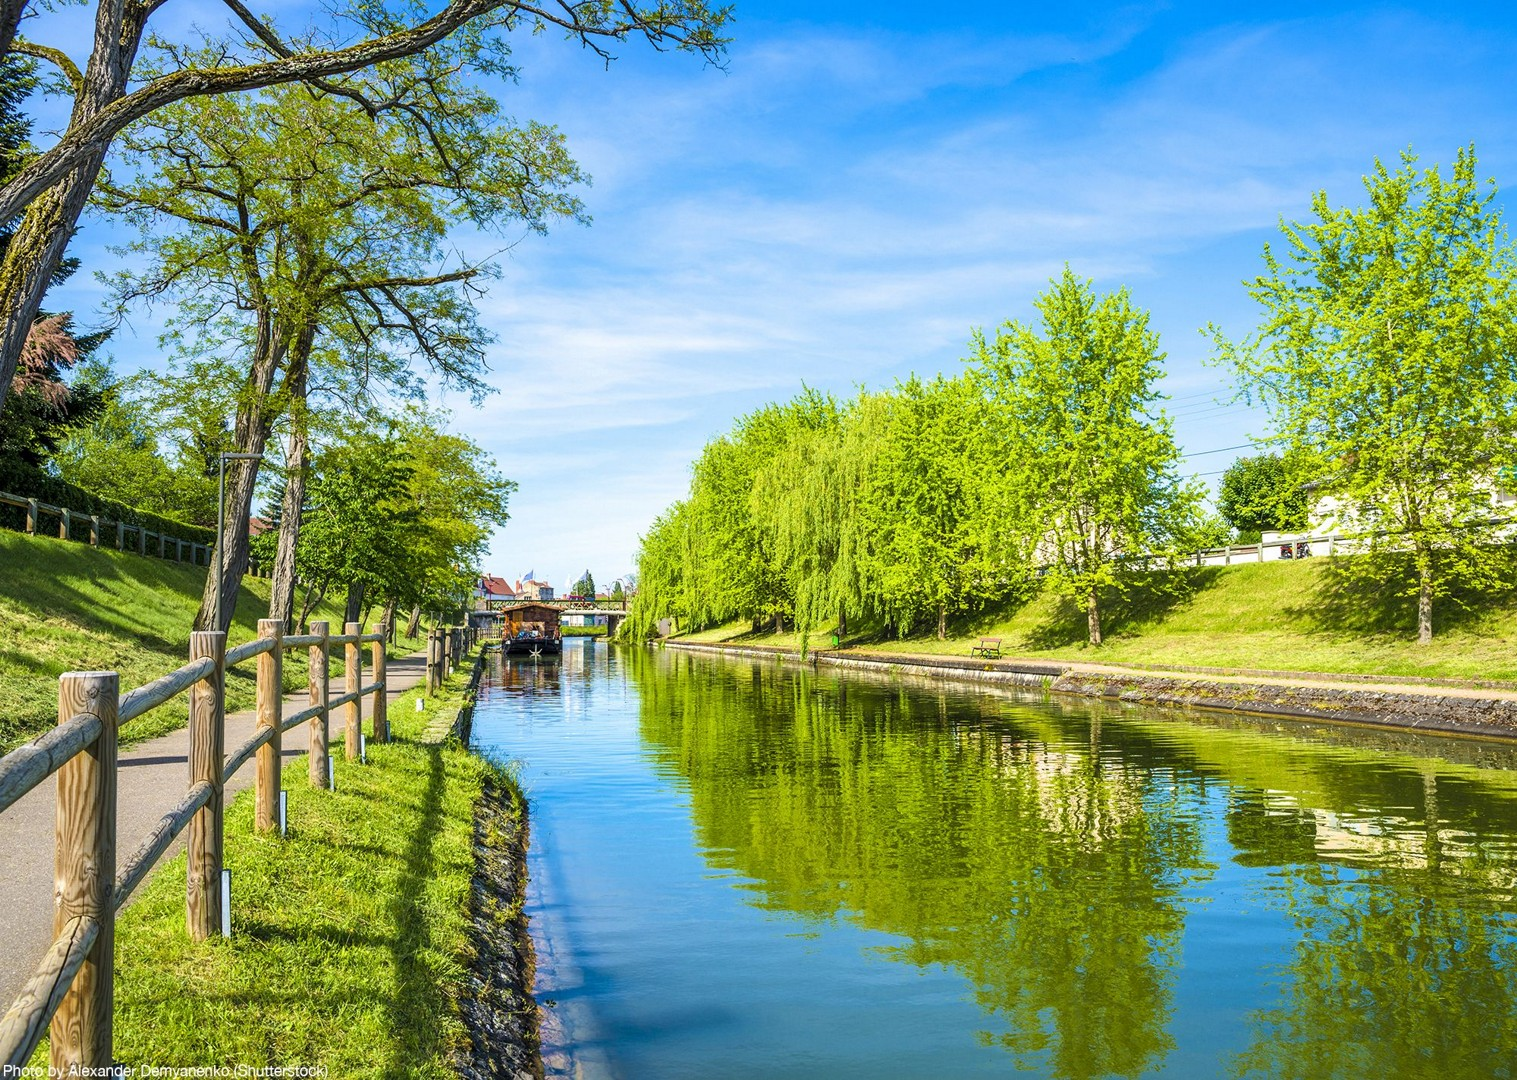 caves-and-canals-burgundy-canal-de-bourgogne-cycling-holiday-bikes.jpg - France - Burgundy - Caves and Canals - Self-Guided Leisure Cycling Holiday - Leisure Cycling